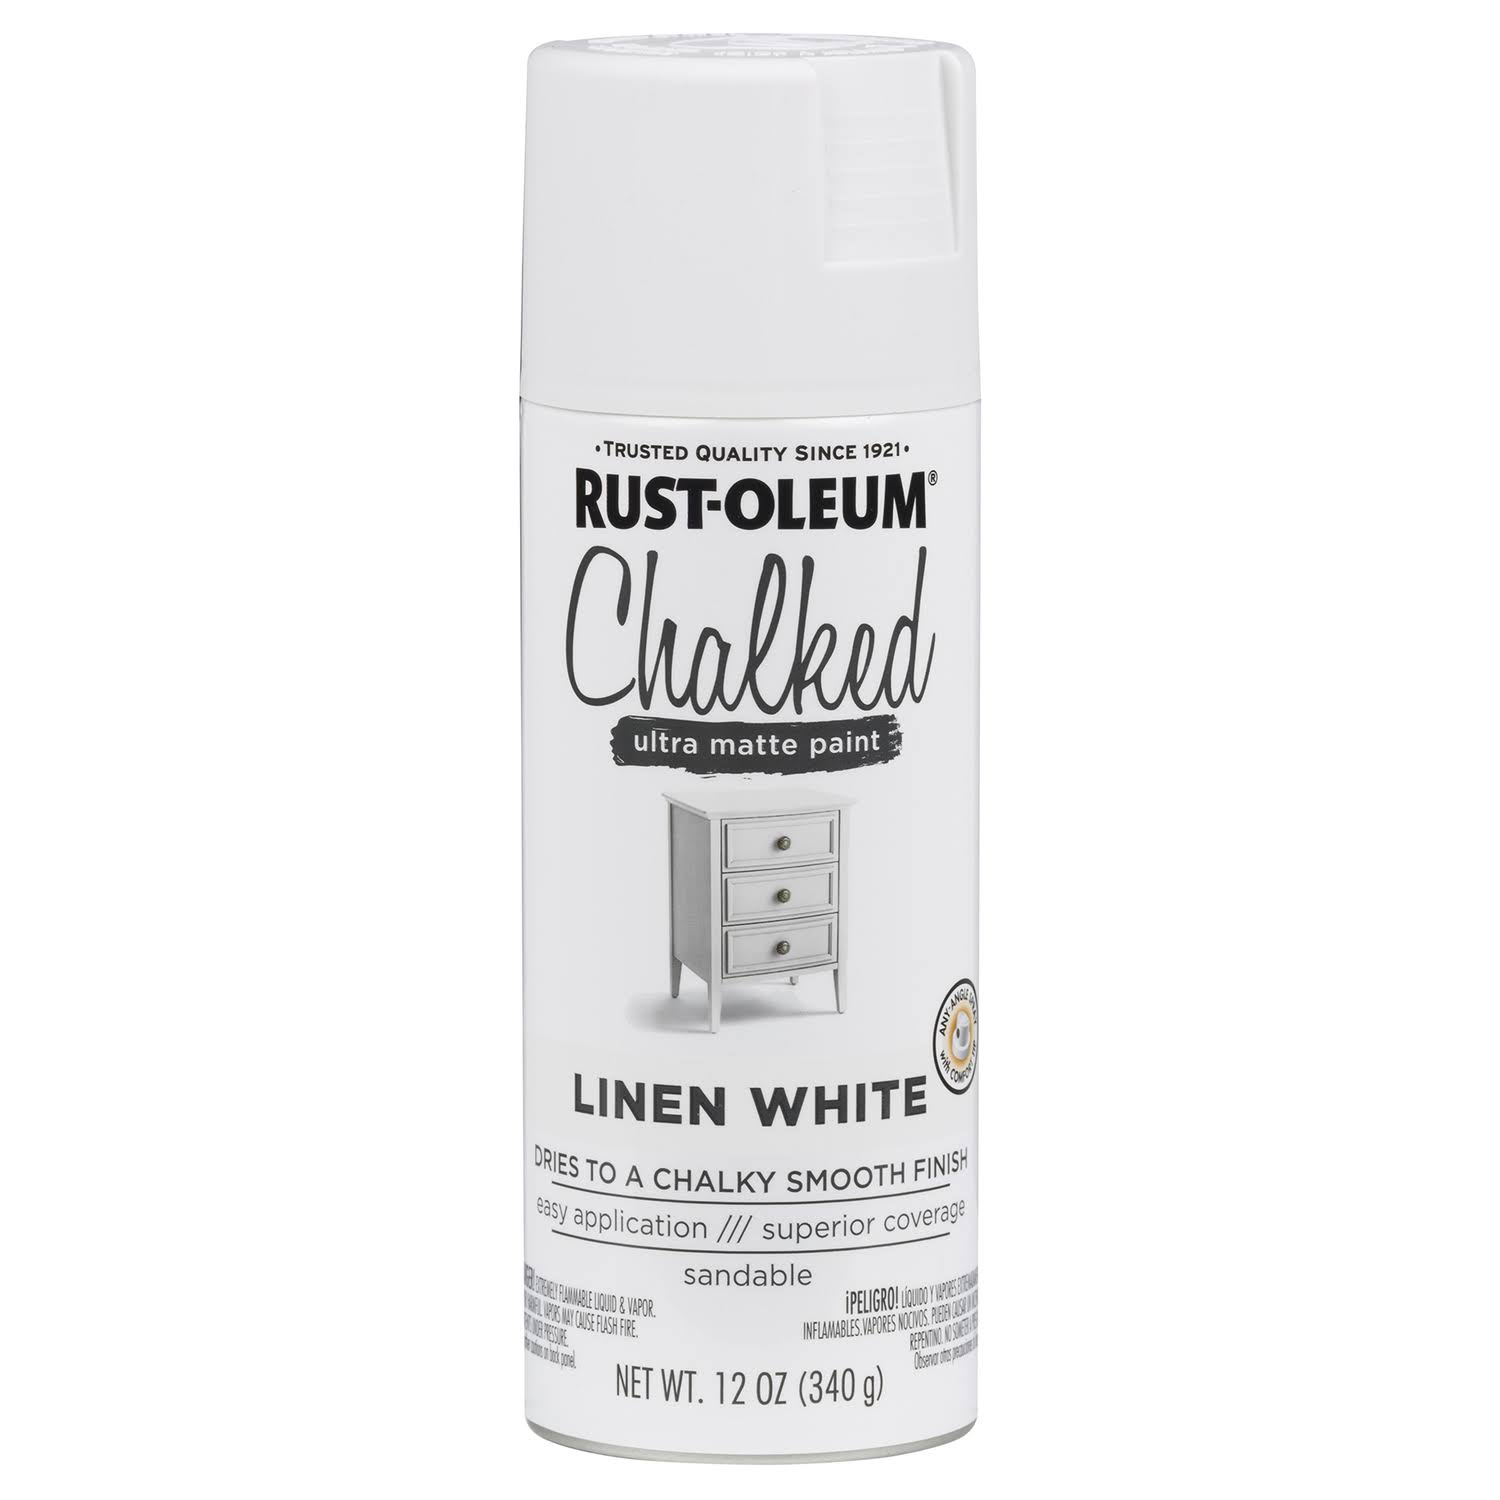 Rust-Oleum Ultra Matte Interior Chalked Spray Paint - 12oz, Linen White